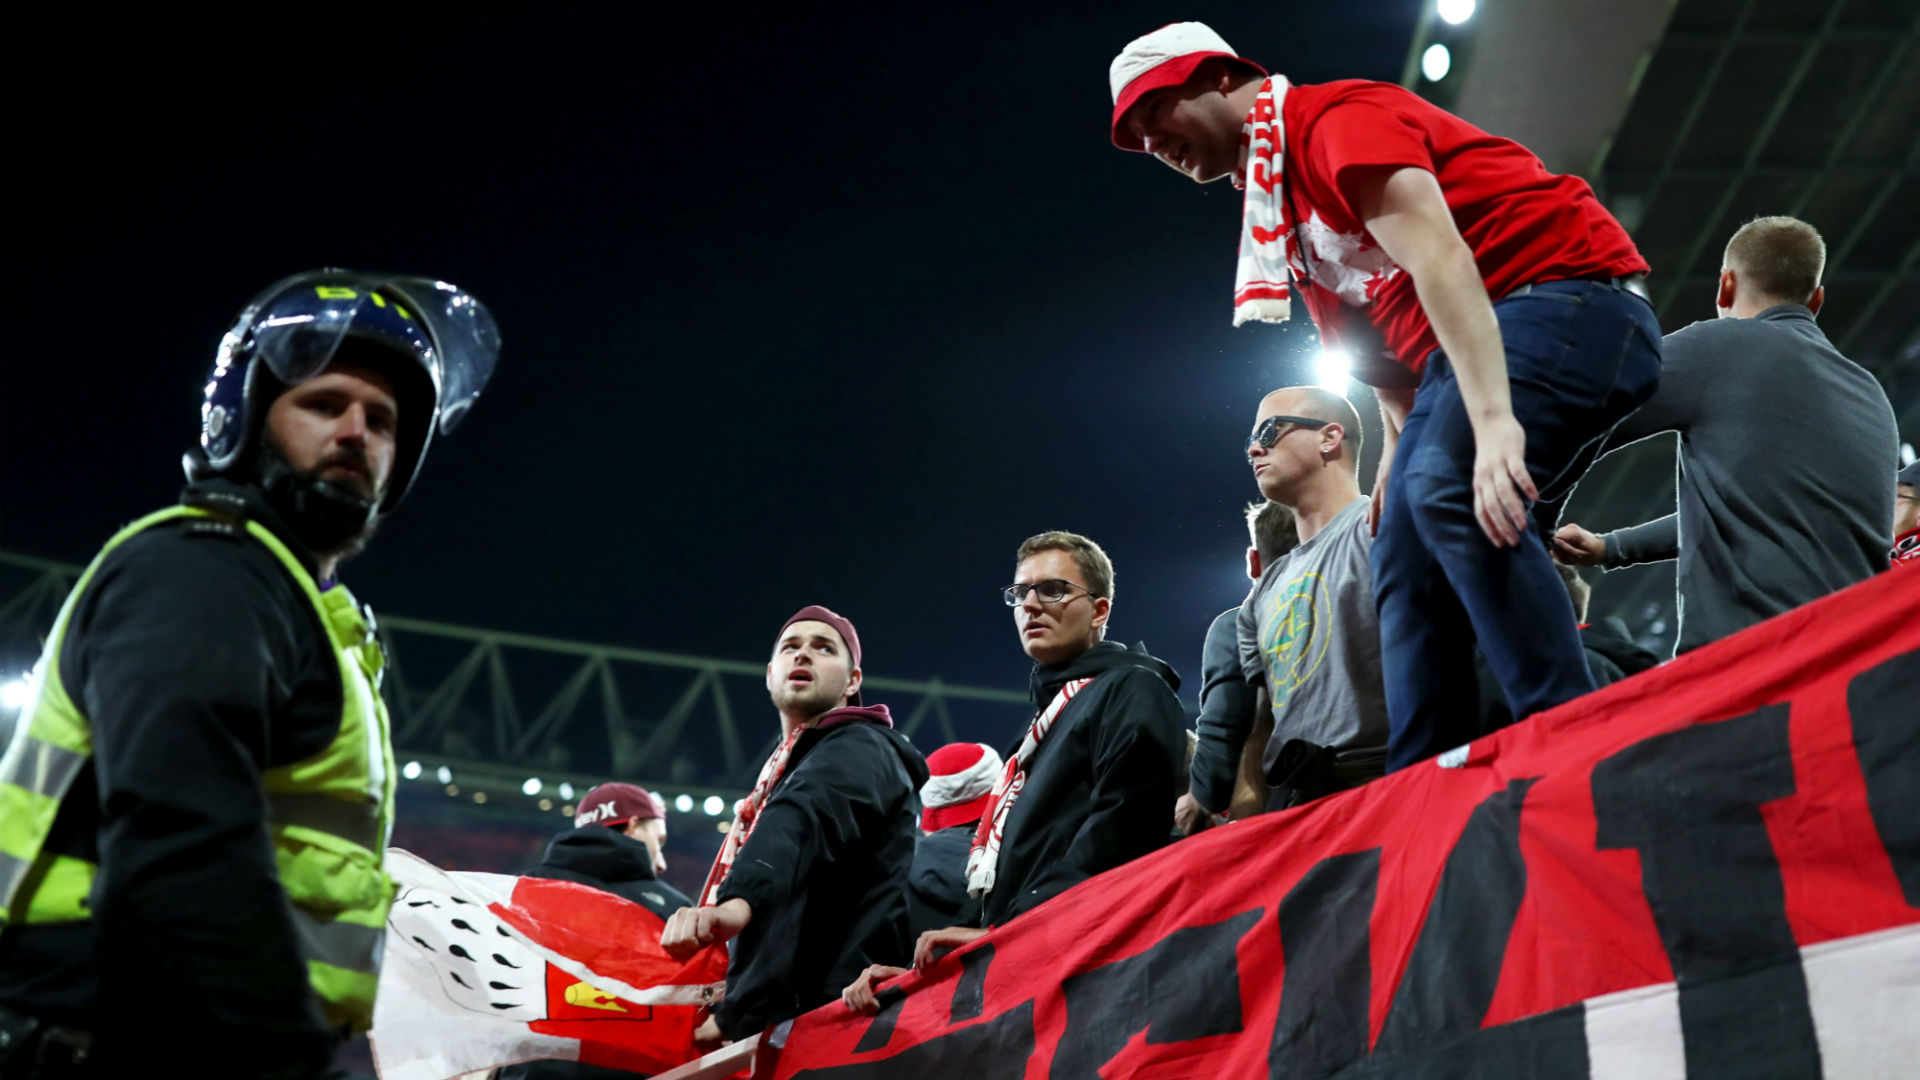 Cologne boss Stoger refuses to be drawn on crowd problems